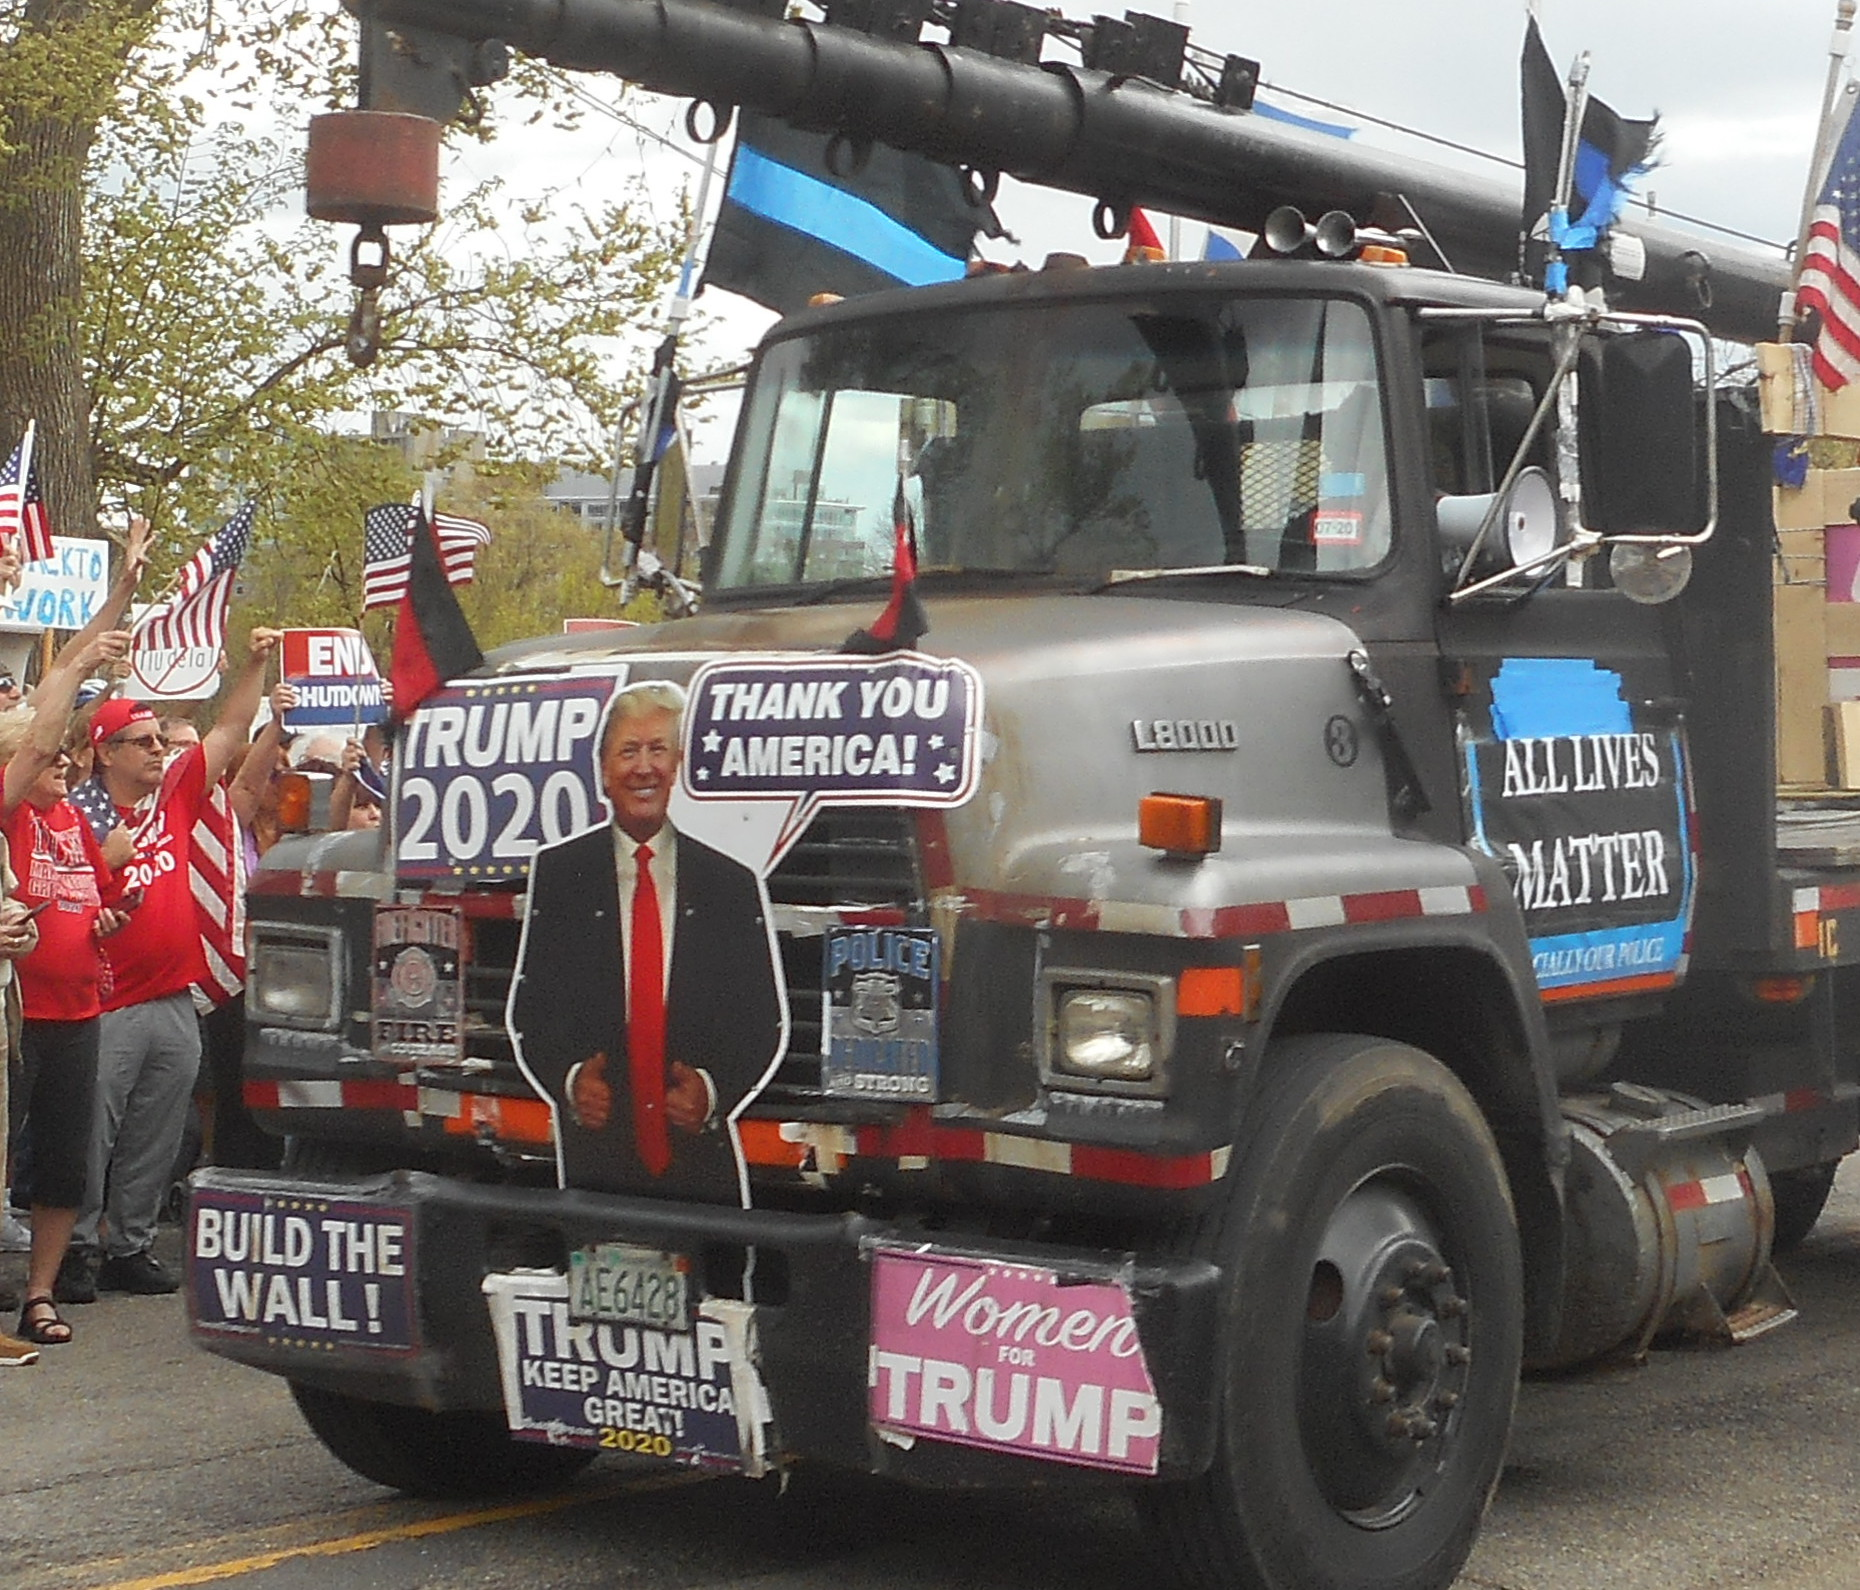 """Photo of large black truck with crane. Crowd in red with US flags raise their fists at in in the background. Truck is coerd in Trump signs including a cutout of Trump, """"Build the Wall,"""" """"Trump 2020"""" """"Women for Trump,"""" """"All Lives Matter,"""" and thin blue line flags."""